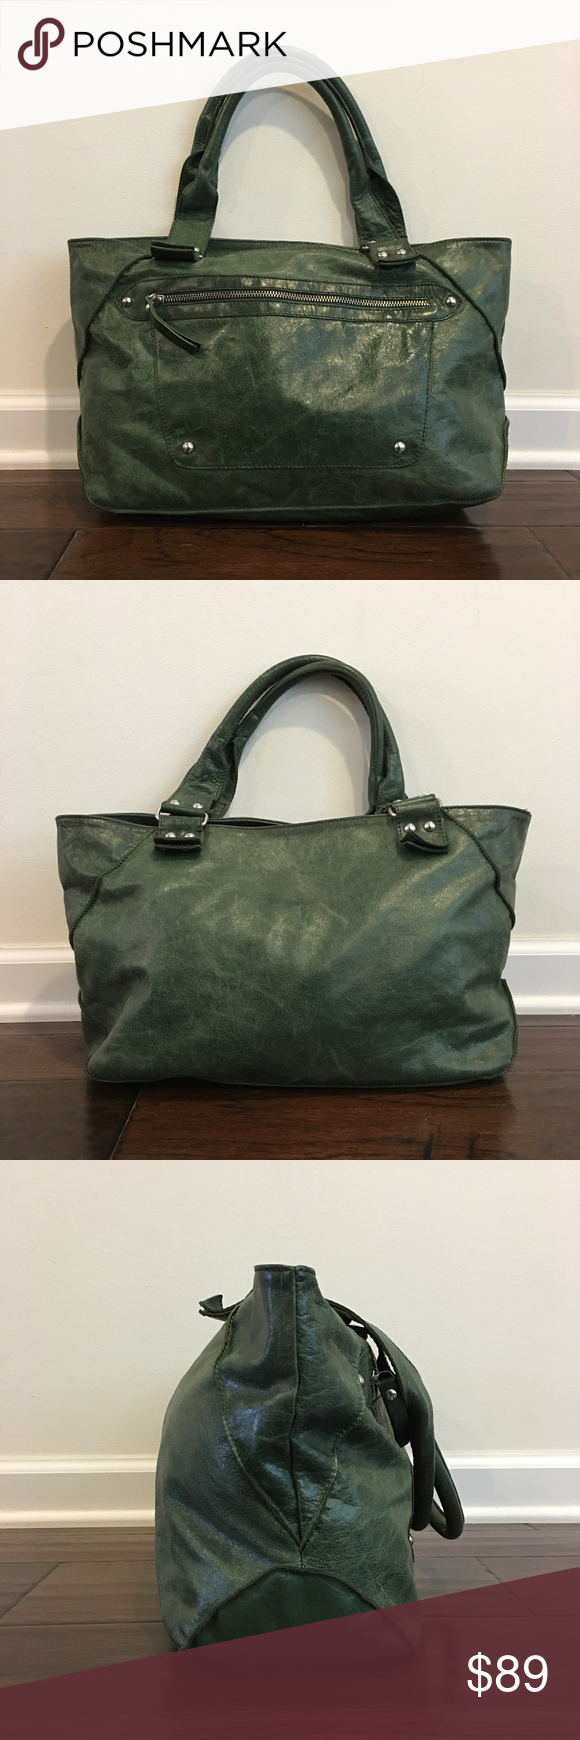 Innue Green Italy Leather Tote Shoulder Handbag Size